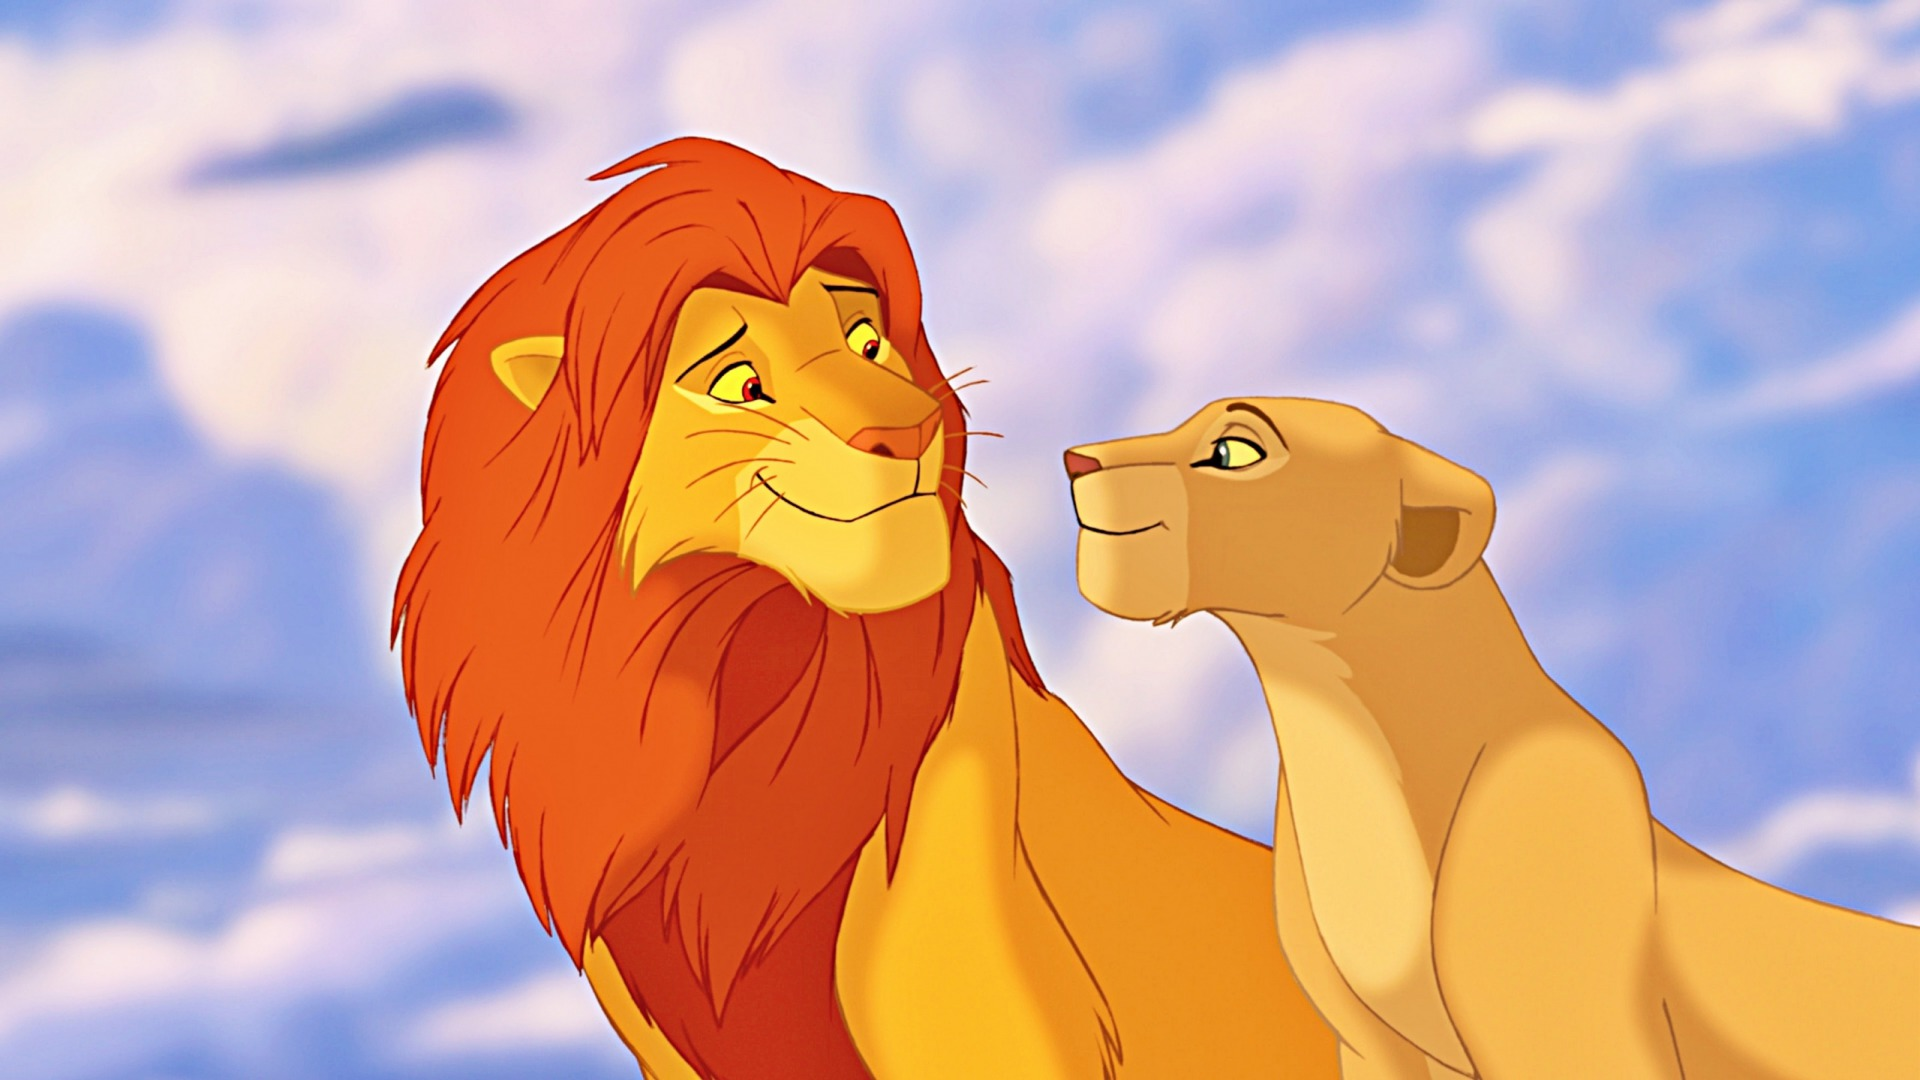 the lion king movie wallpaper 64210